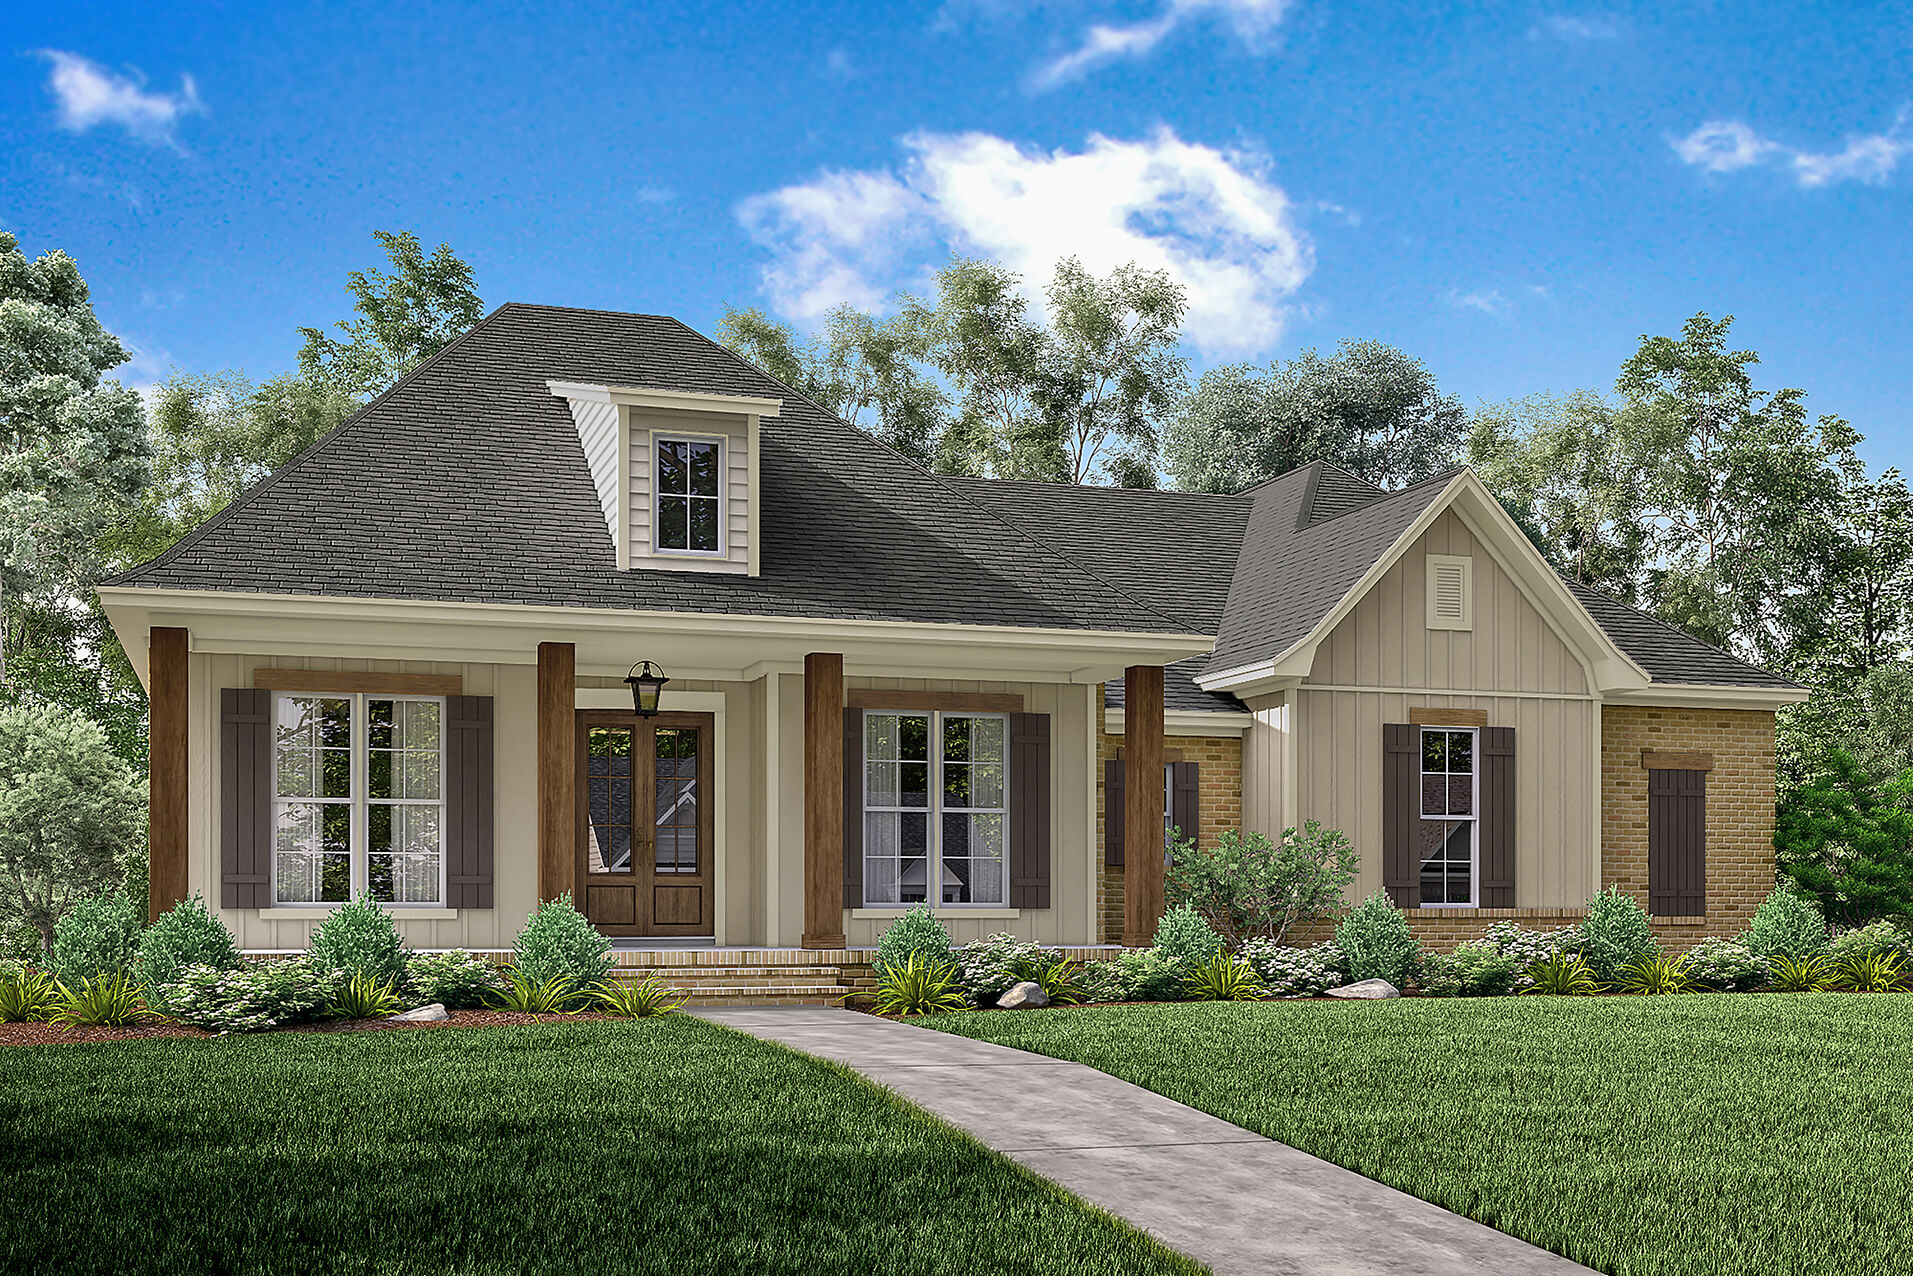 3 bedrm 1900 sq ft acadian house plan 142 1163 for House lans